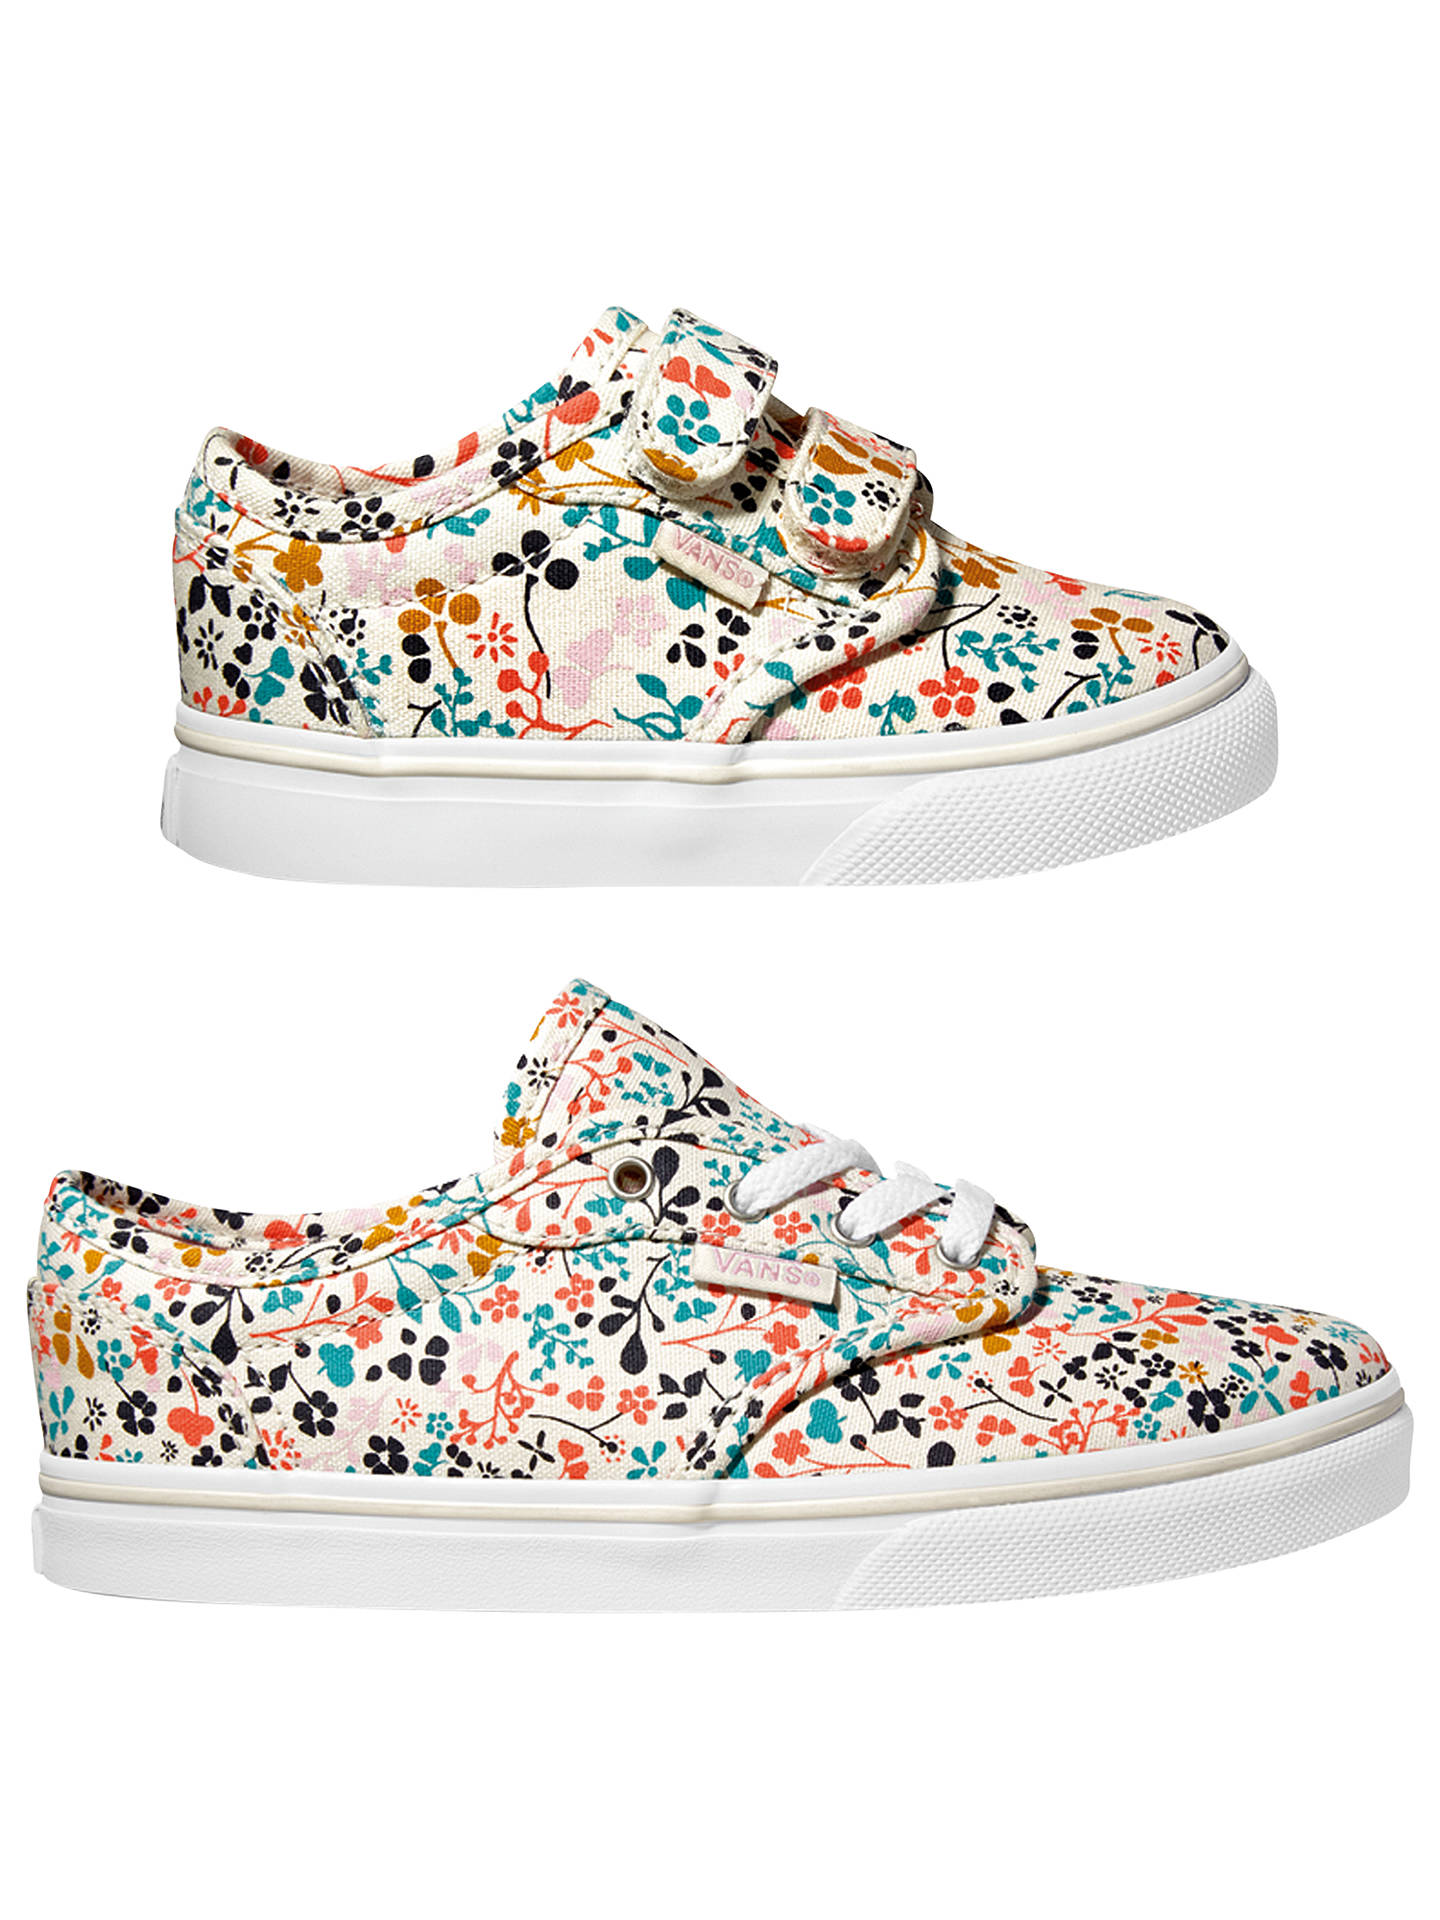 49047c5036 Buy Vans Children s Atwood V Floral Shoes